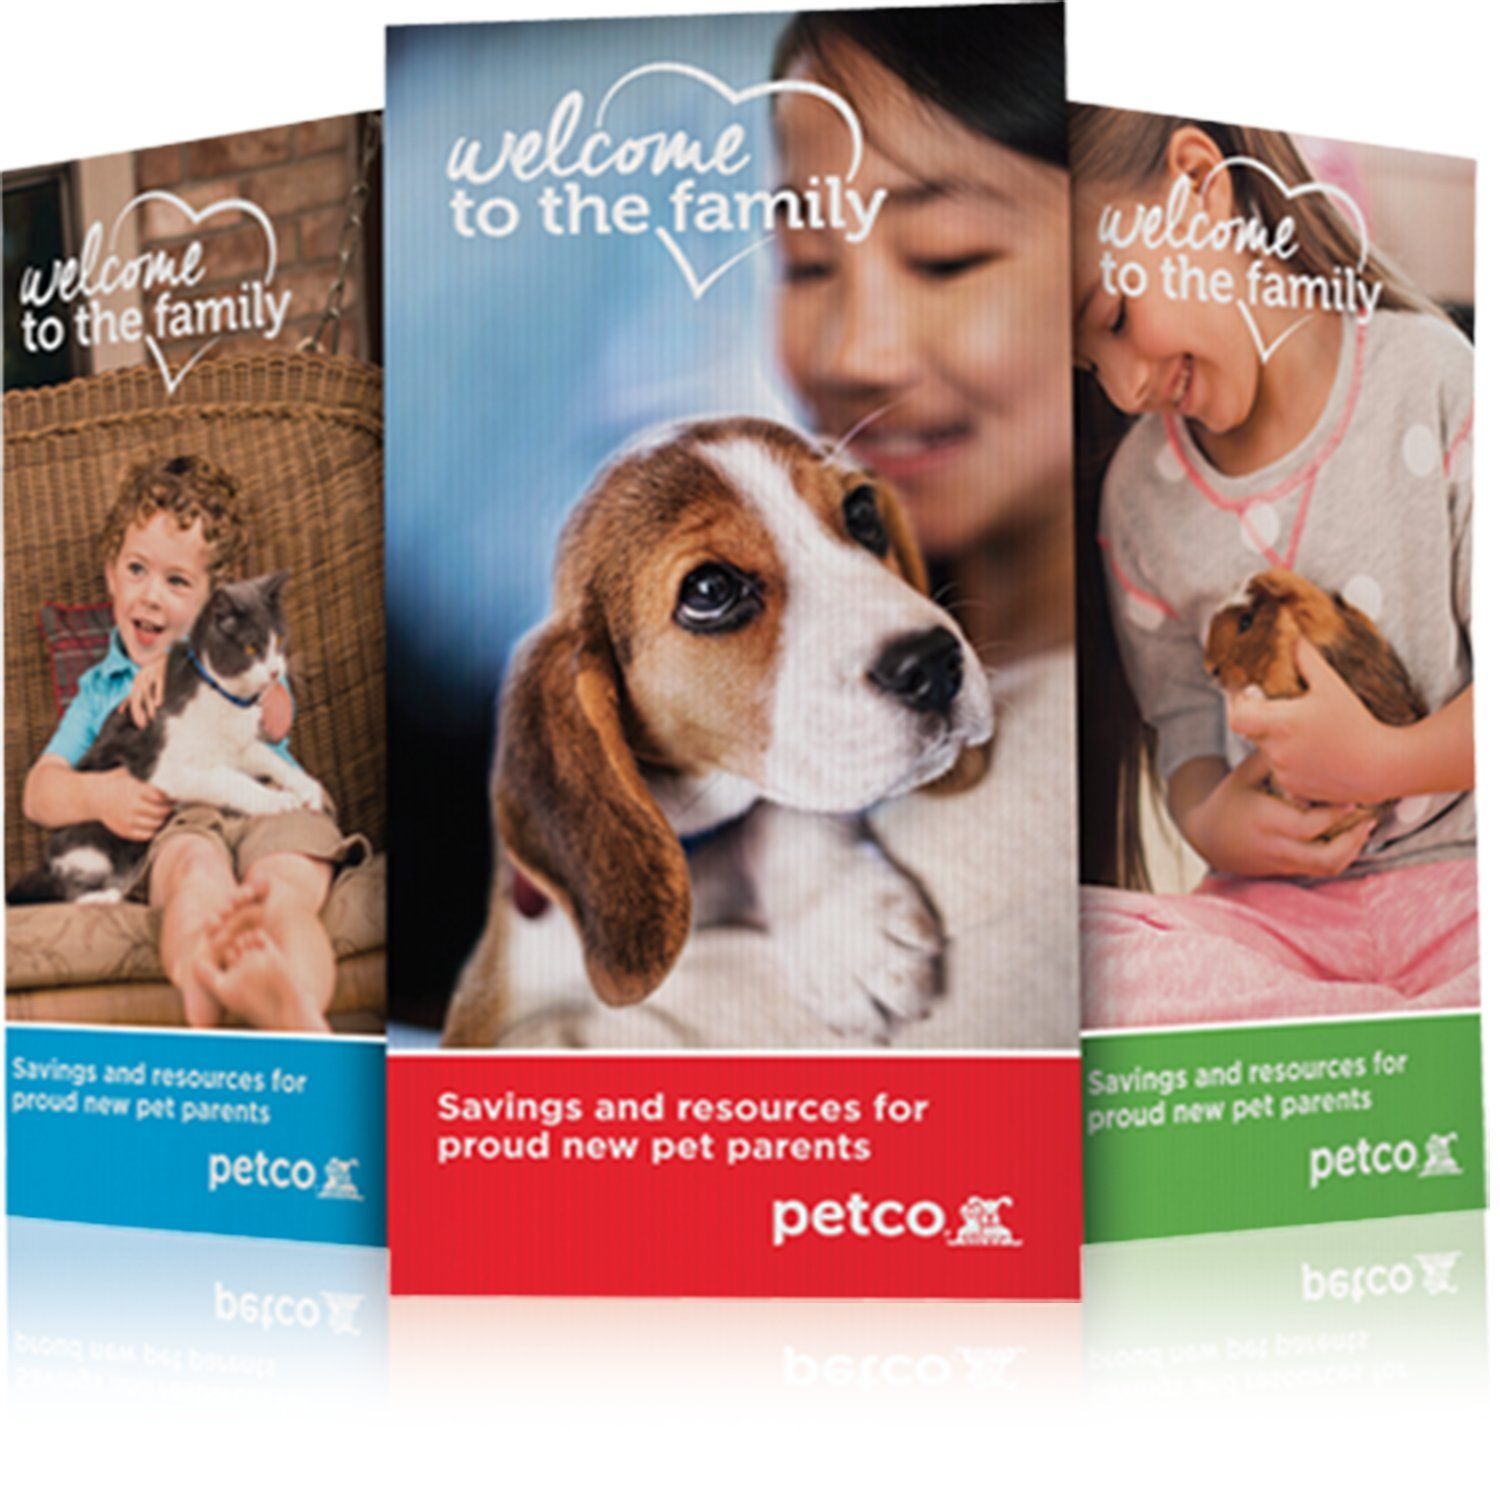 Welcome To The Family Care Pack Petco Store Petco Animal Companions Pet Care